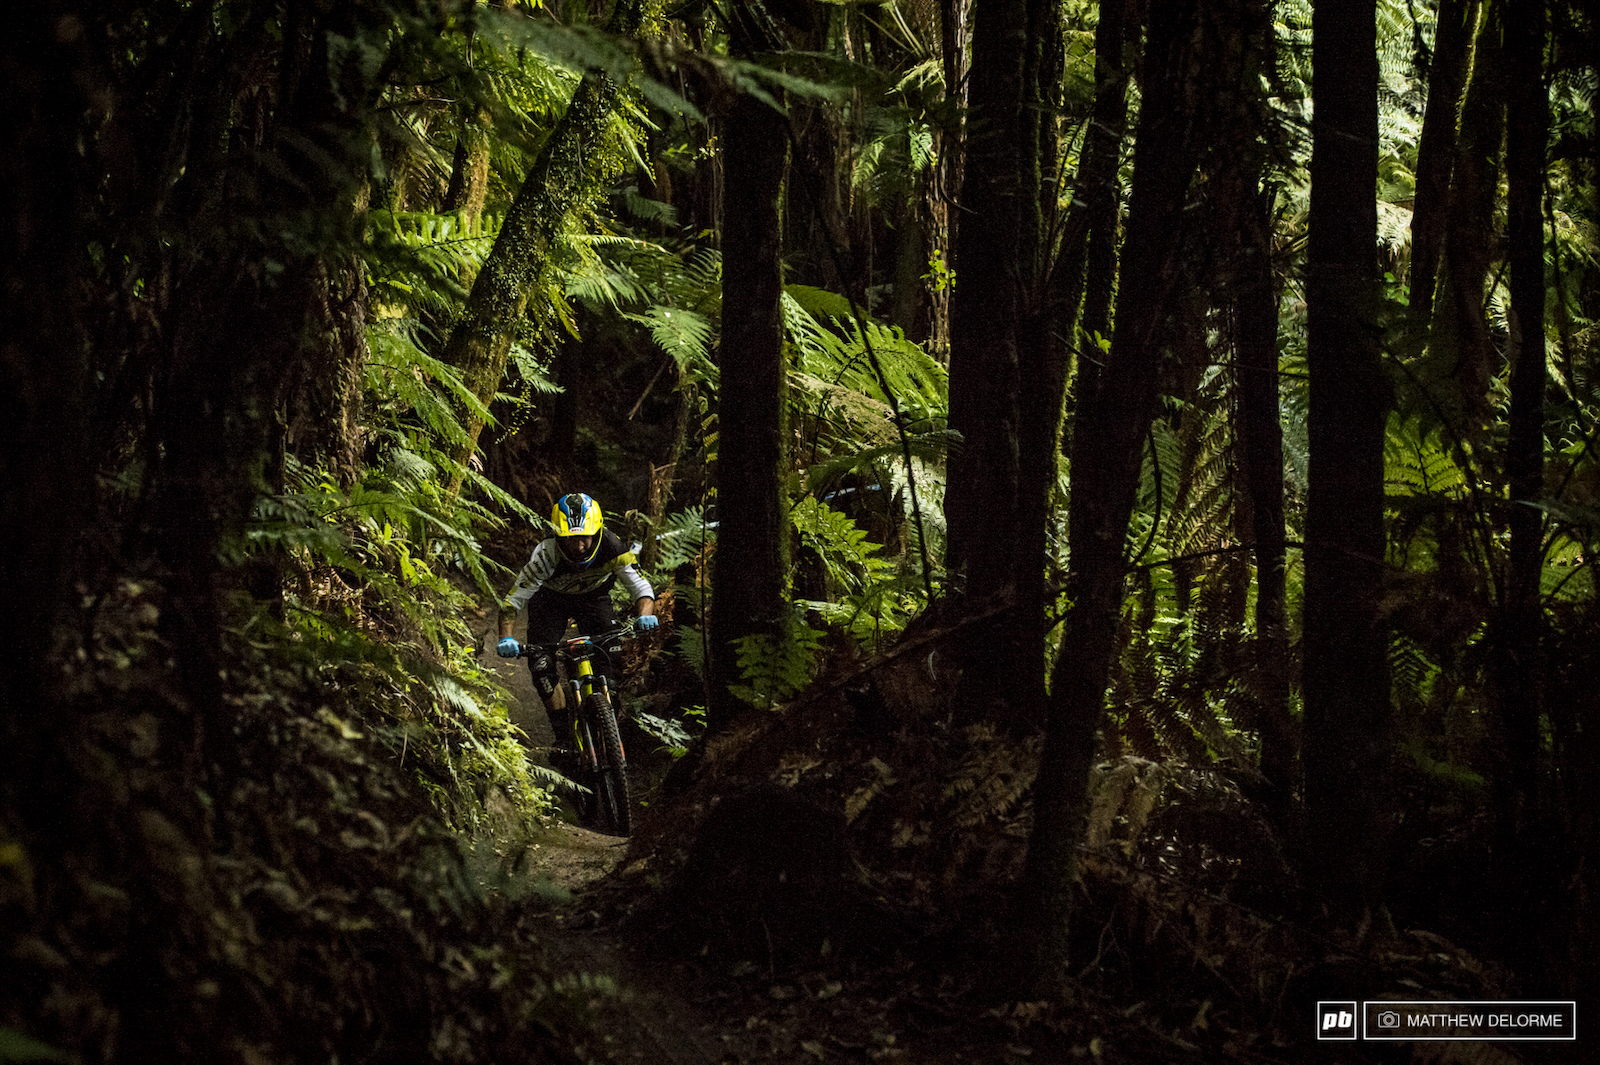 Dan Atherton was pushing hard through the dark woods of stage one this morning.